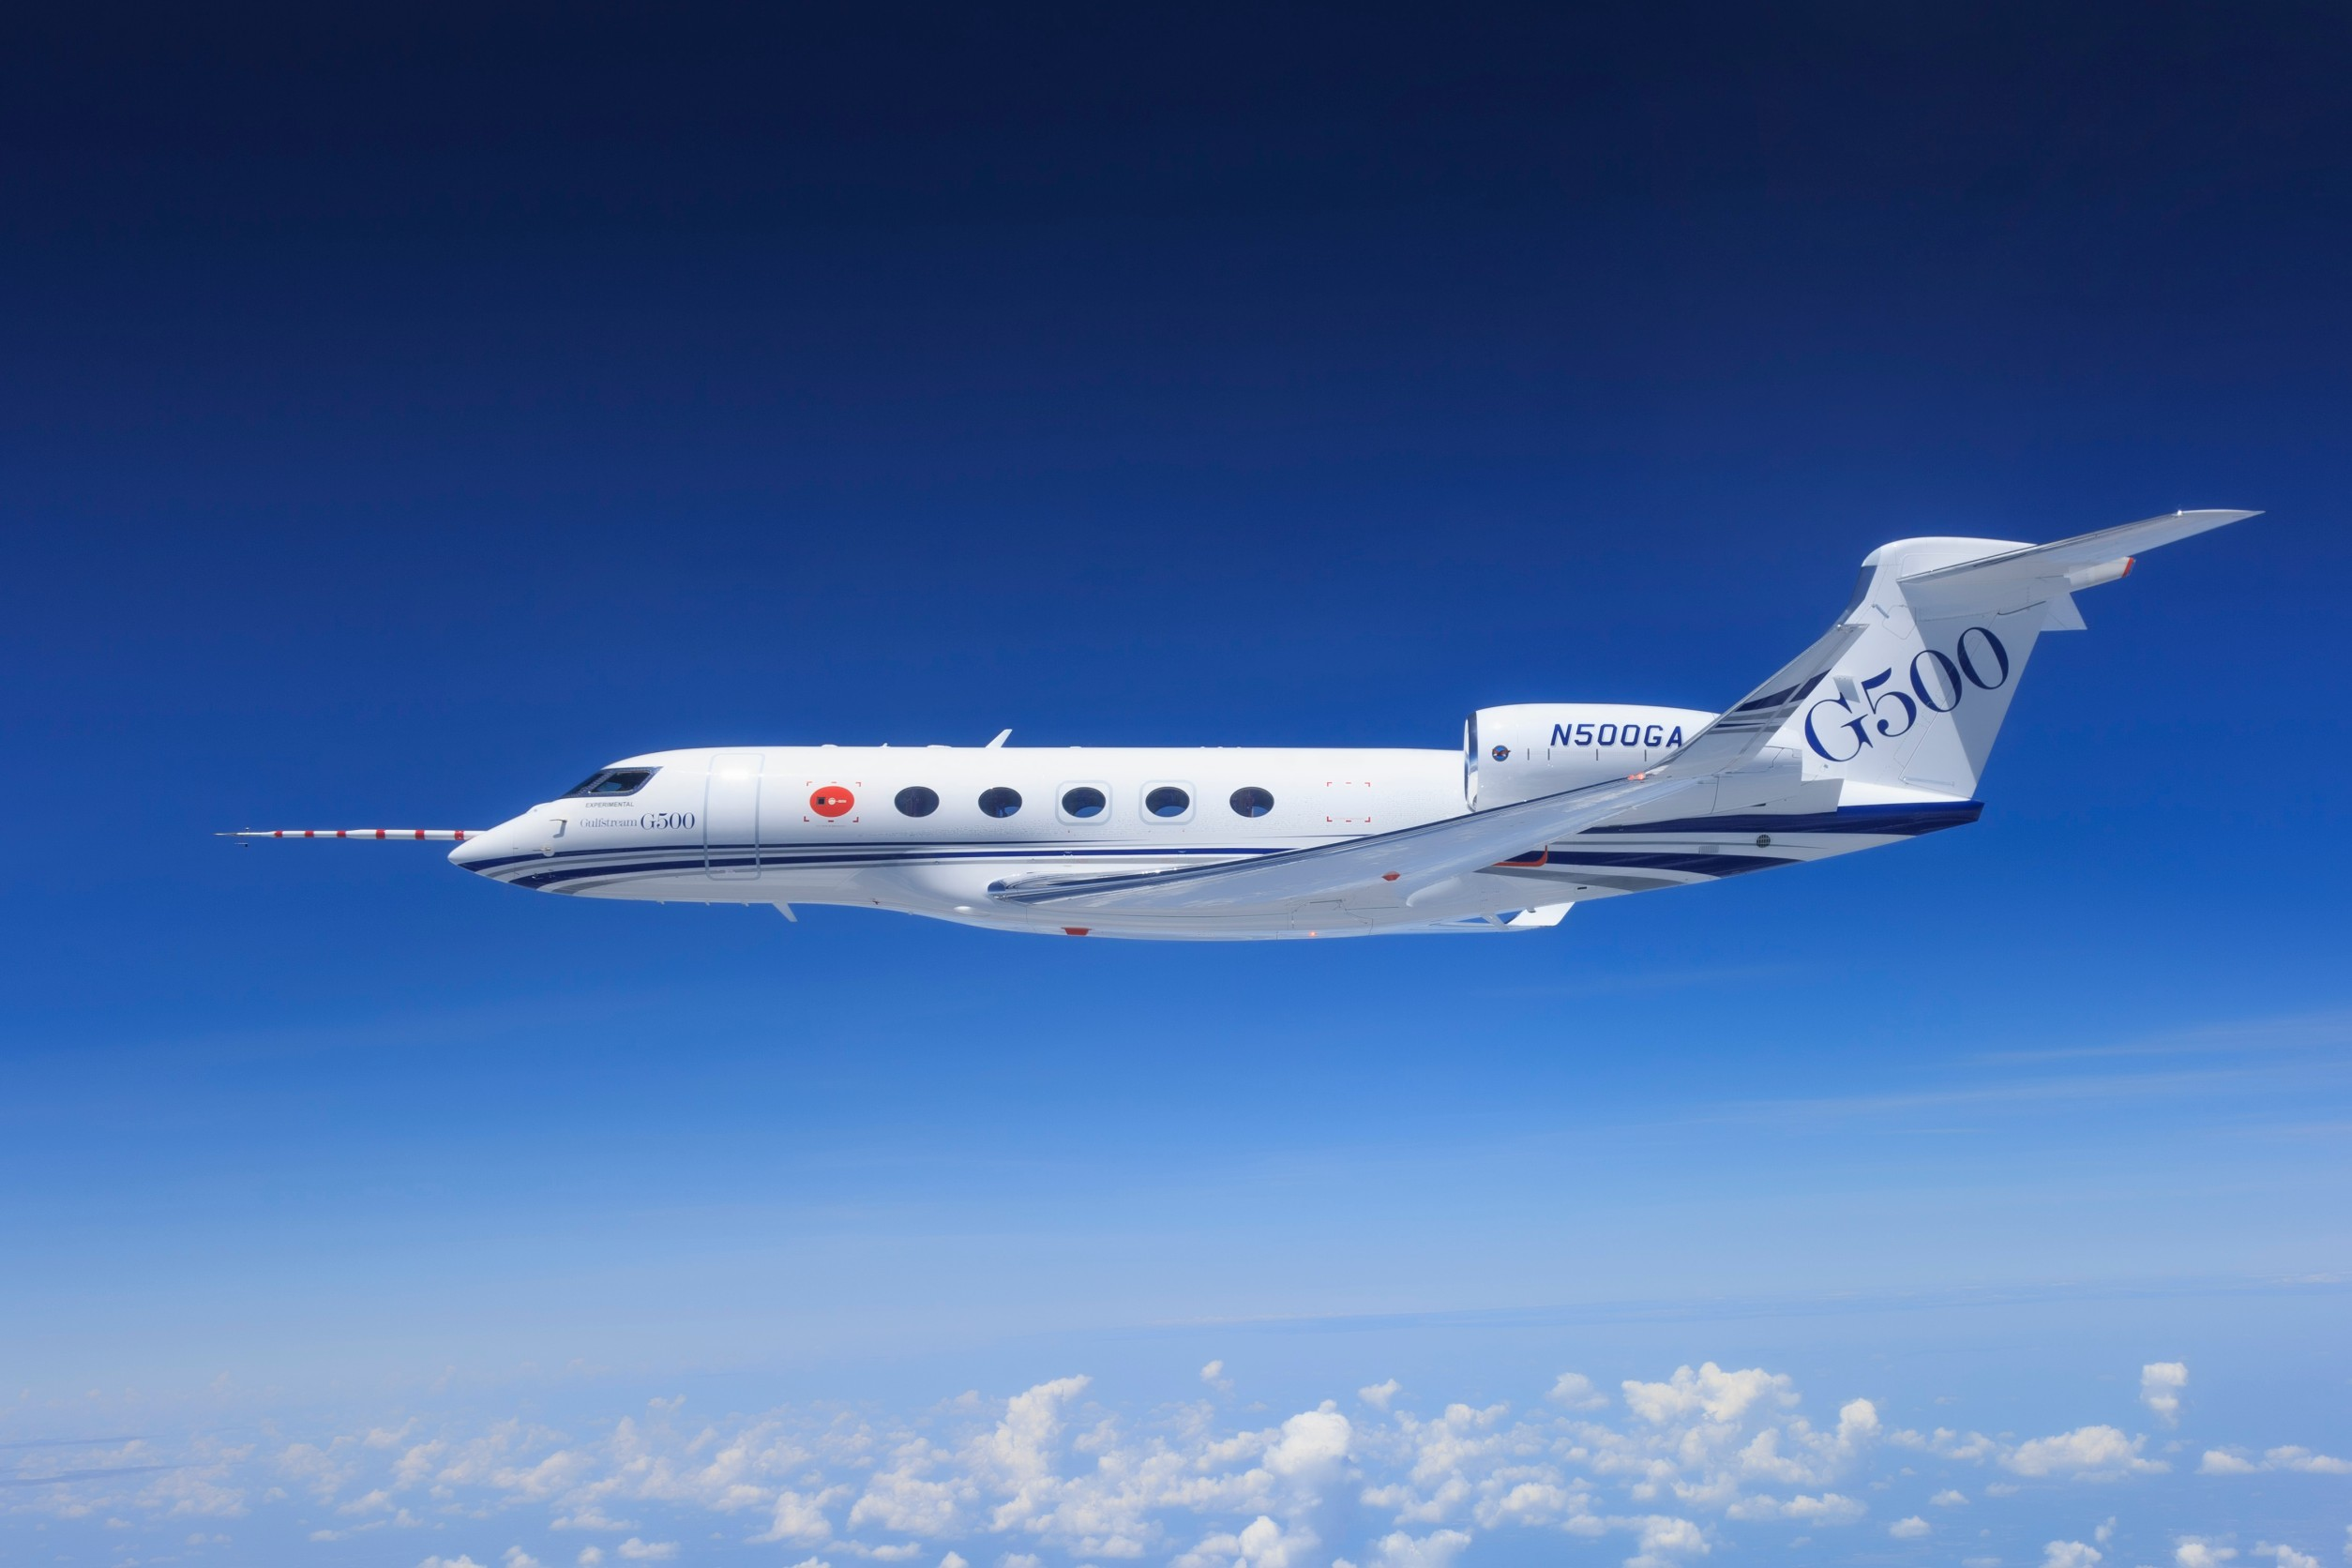 The Royal Thai Army plans to spend 1.34 billion baht to buy a 'Gulfstream G500'. www.gulfstreamnews.com